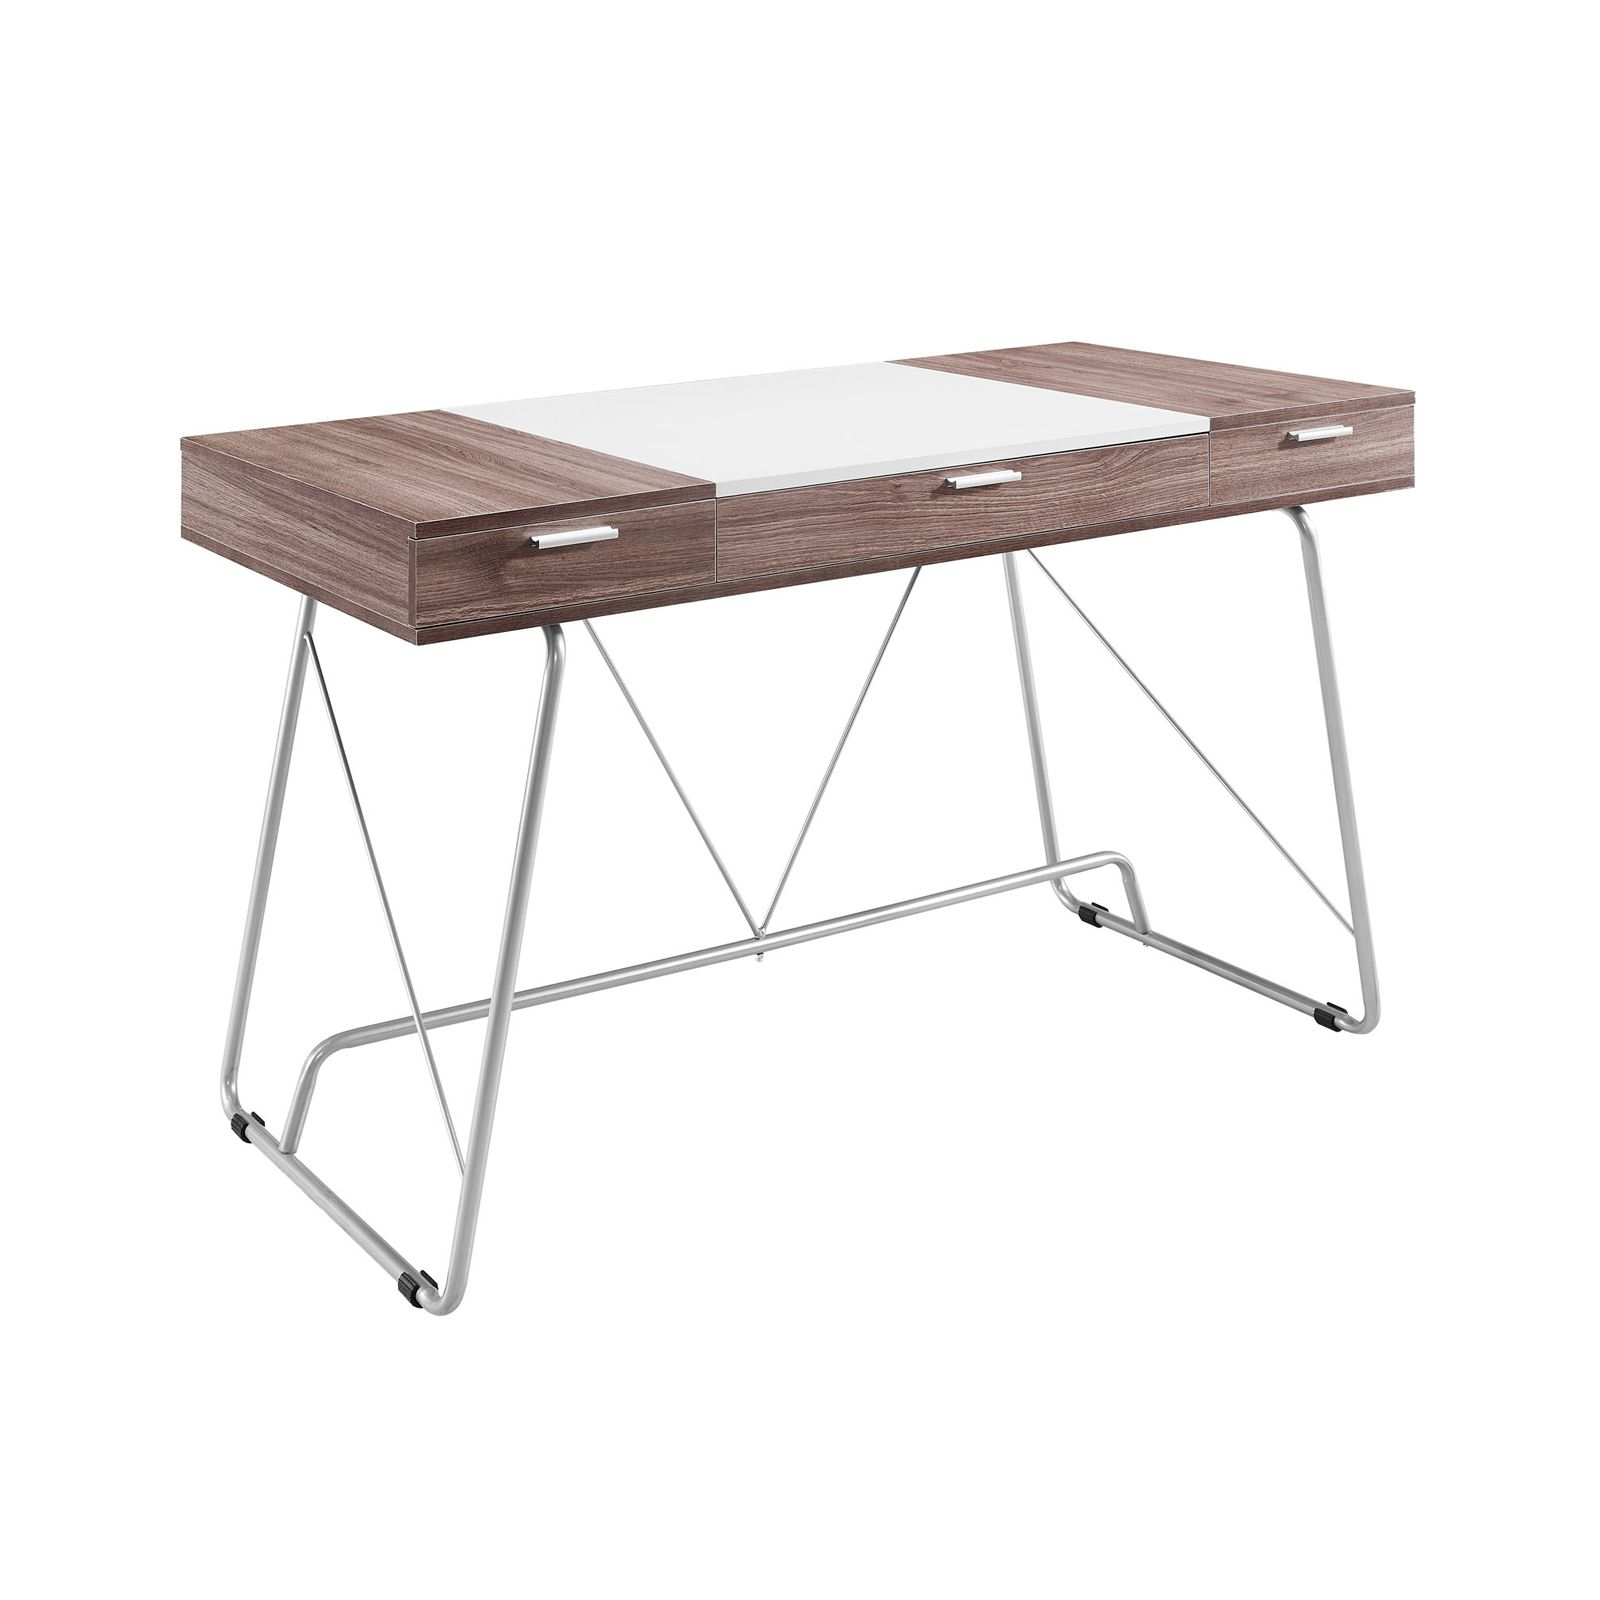 Desk Top Center Section With Hinges On Reverse To Convert Writing Table Into A Drafting